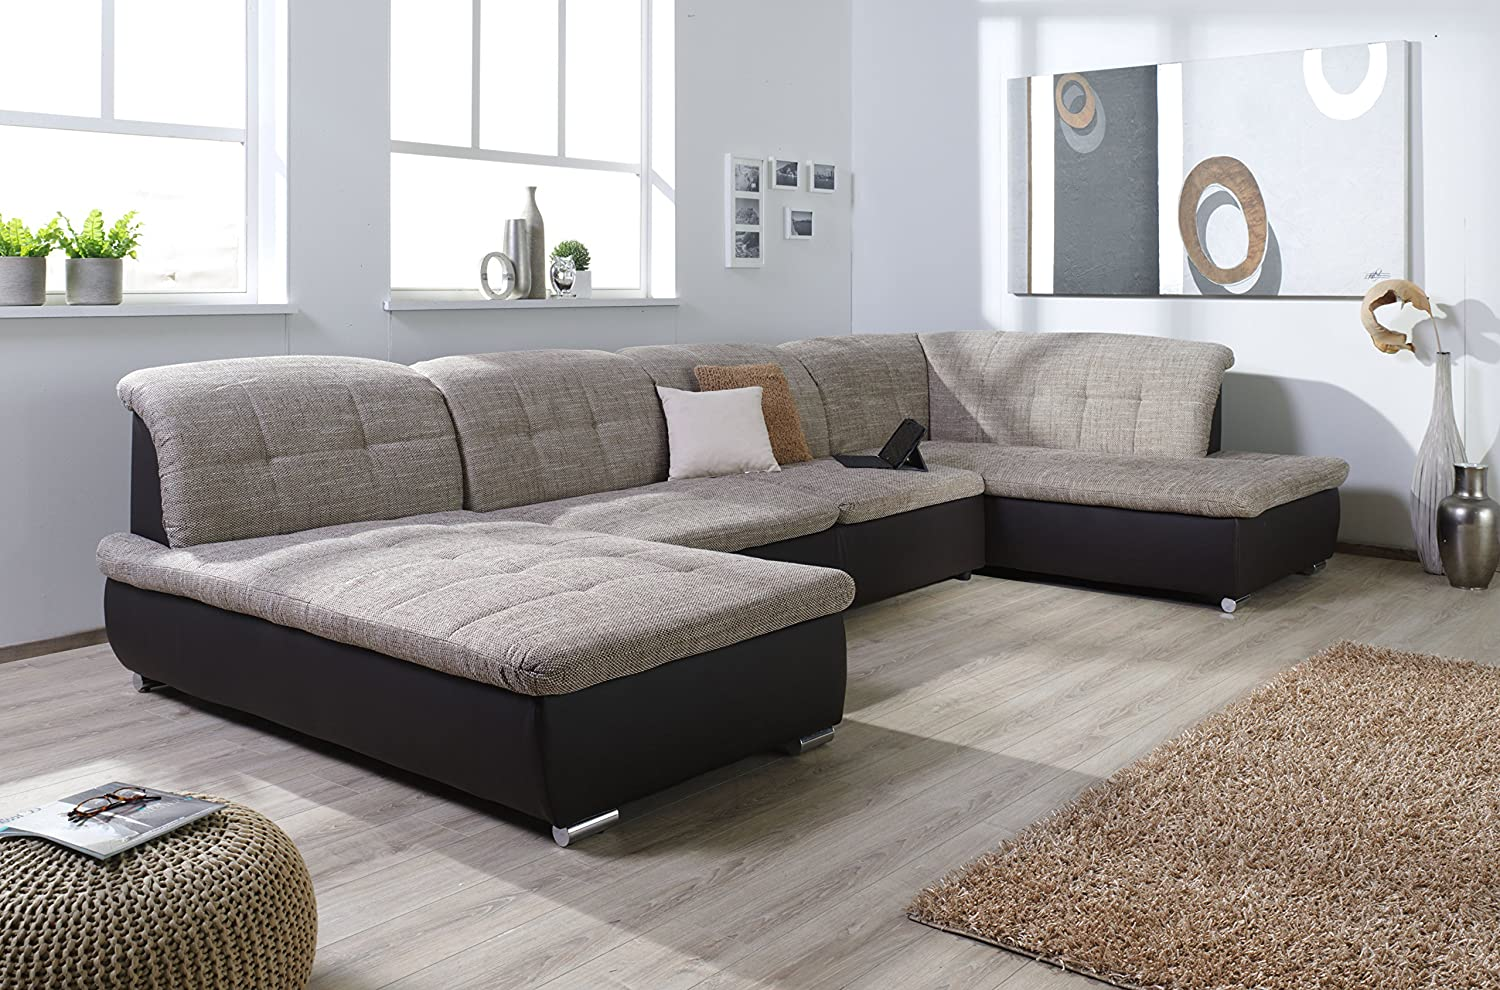 xxl couch braun beautiful xxl lounge sofa couch braun stoff in senden with xxl couch braun. Black Bedroom Furniture Sets. Home Design Ideas